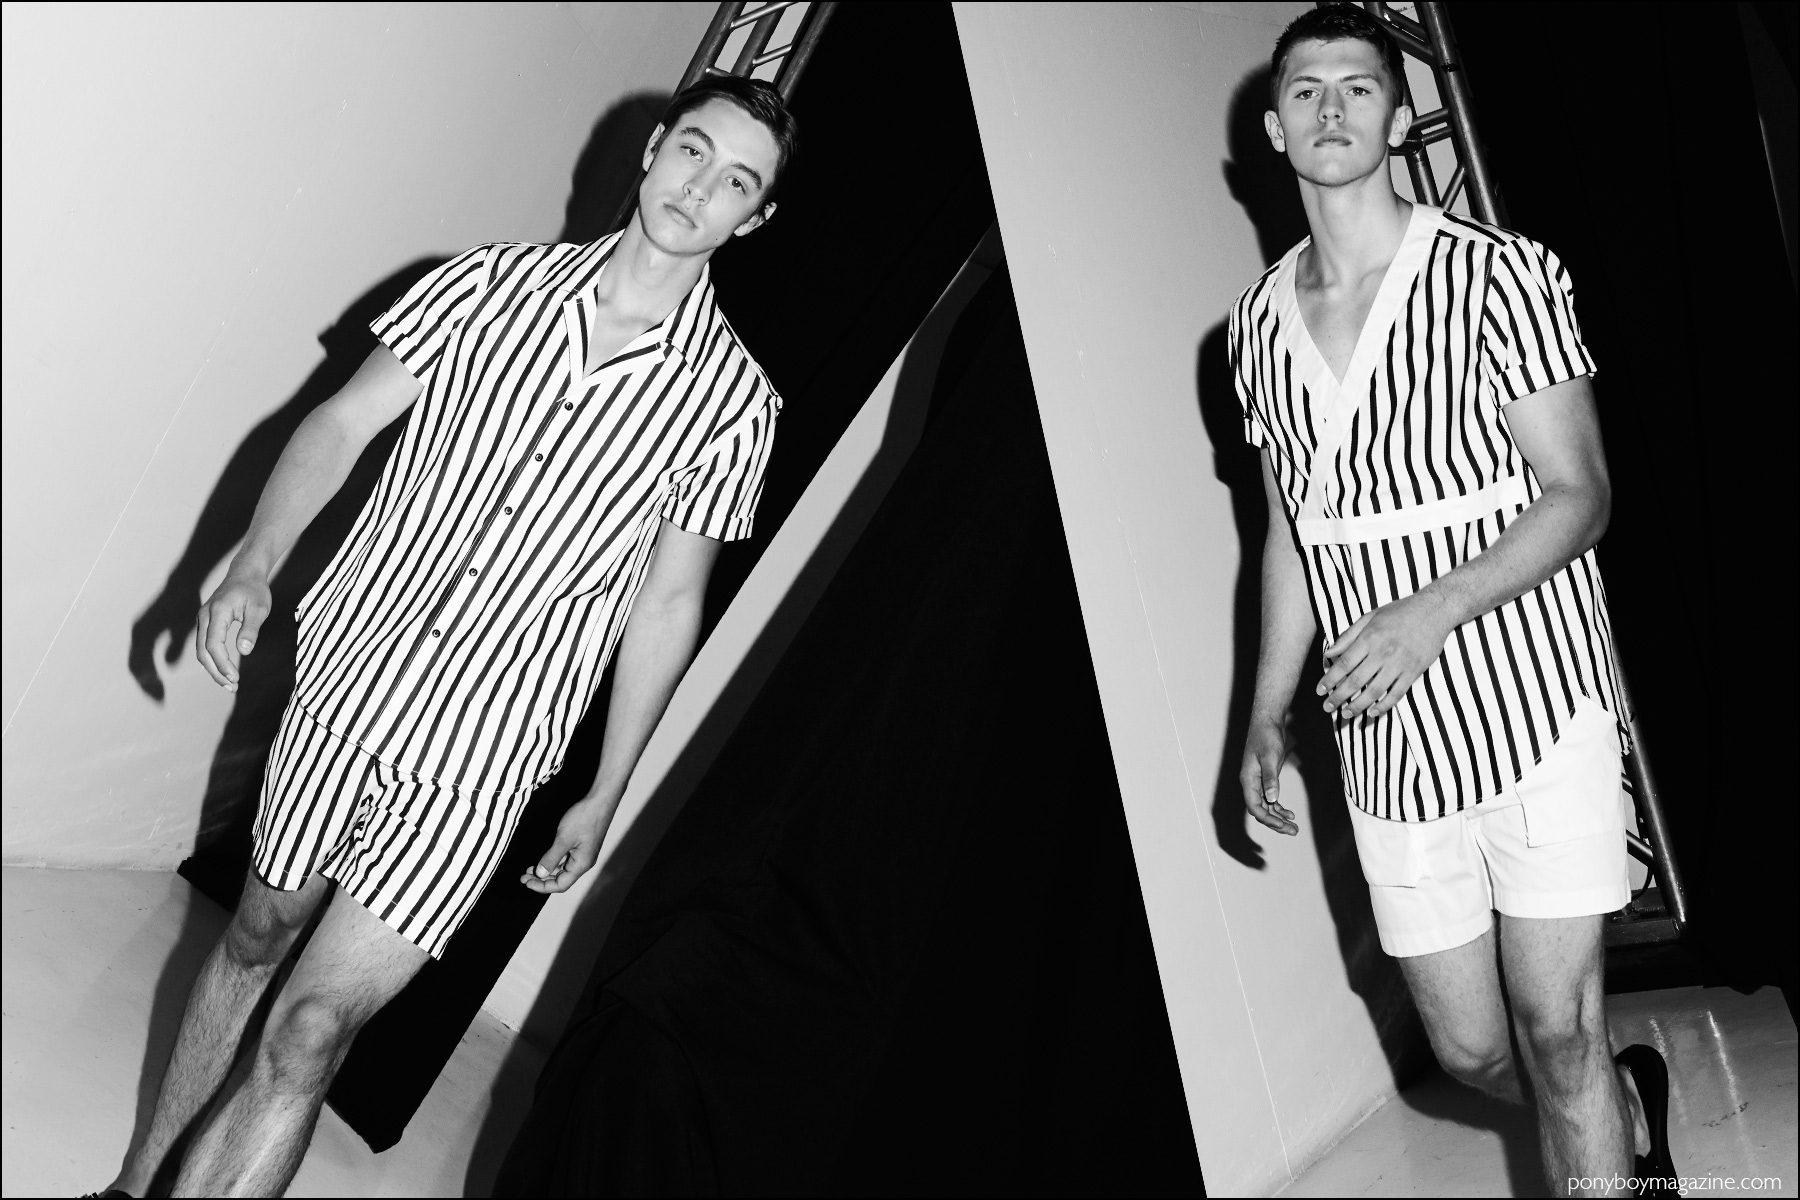 Models wear black & white stripe menswear at Carlos Campos Spring/Summer 2017 menswear show. Photography by Alexander Thompson for Ponyboy magazine NY.